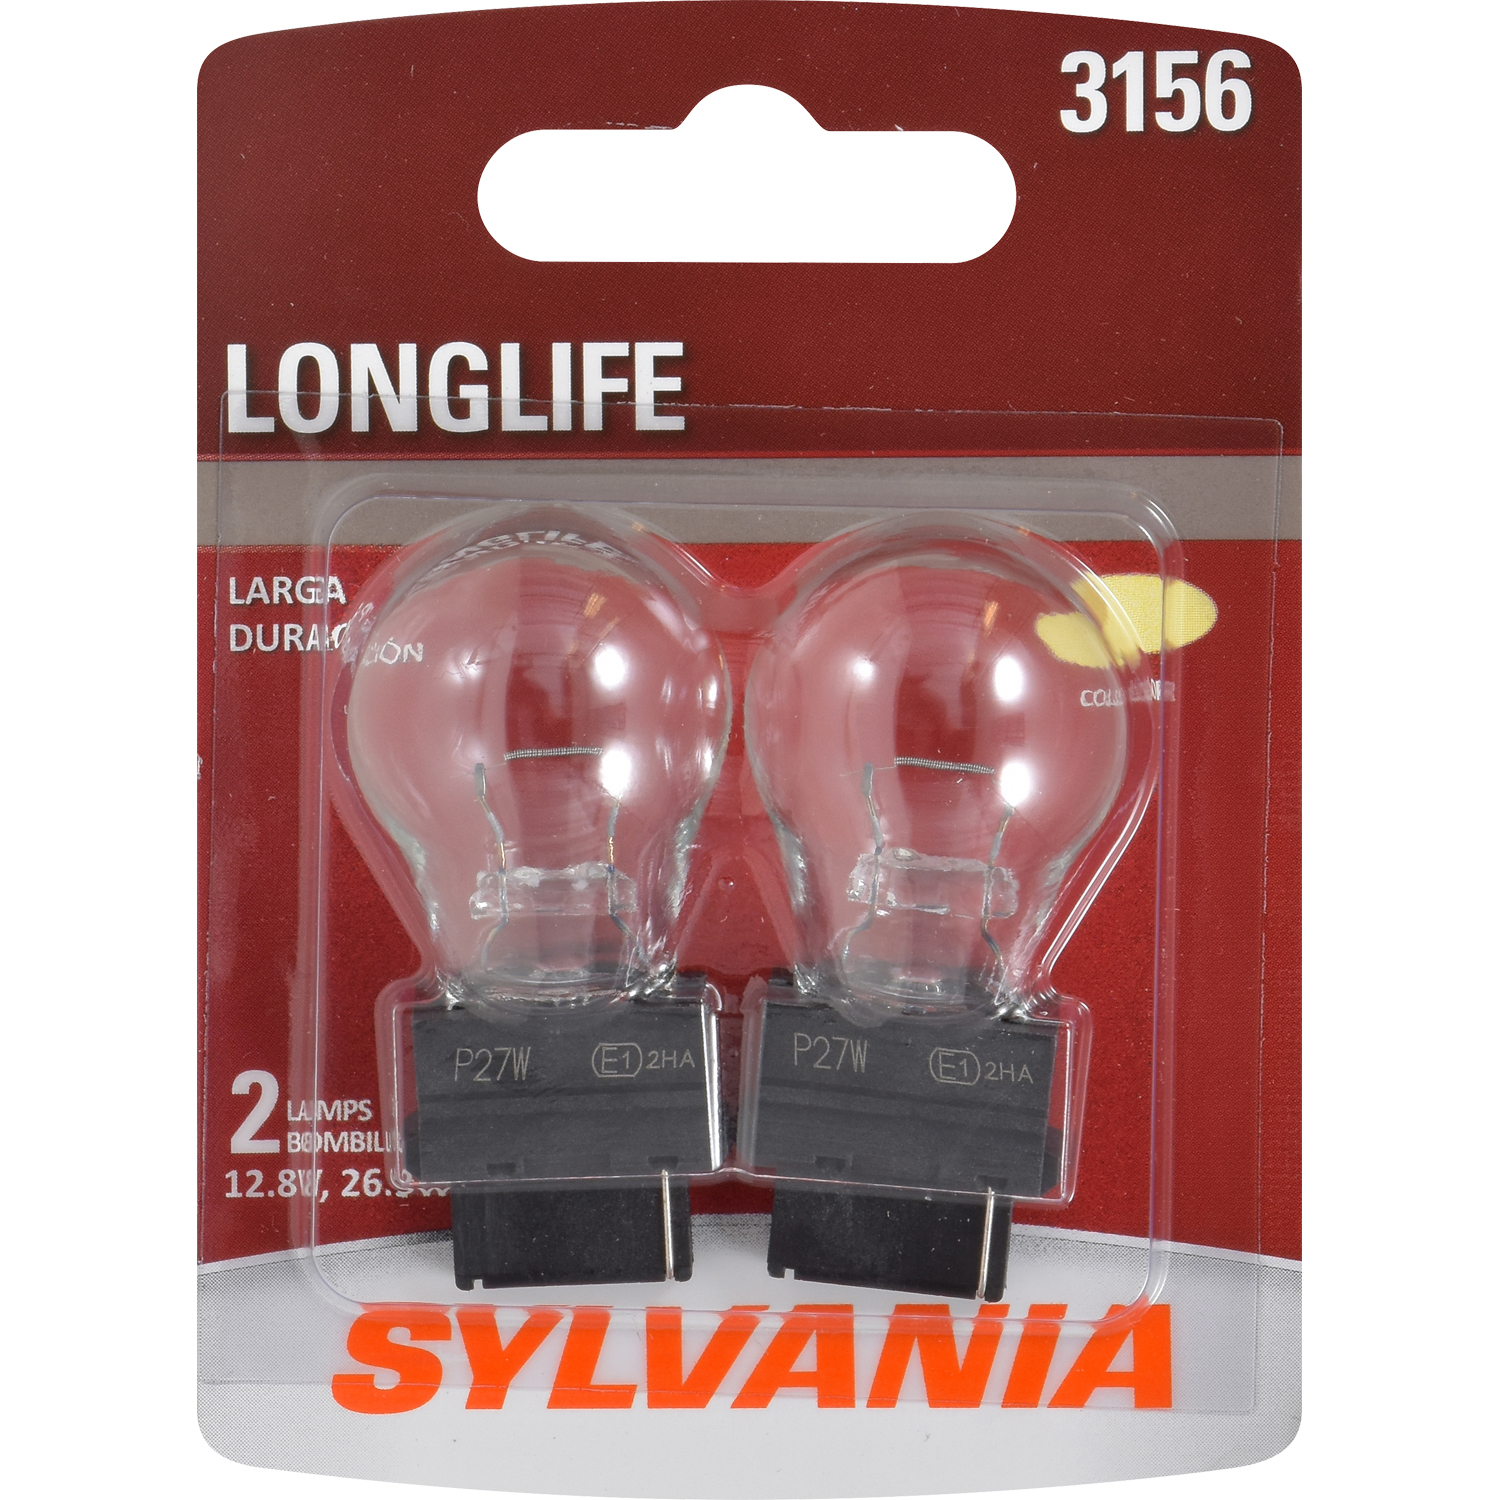 SYLVANIA 3156 Long Life Mini Bulb, Pack of 2